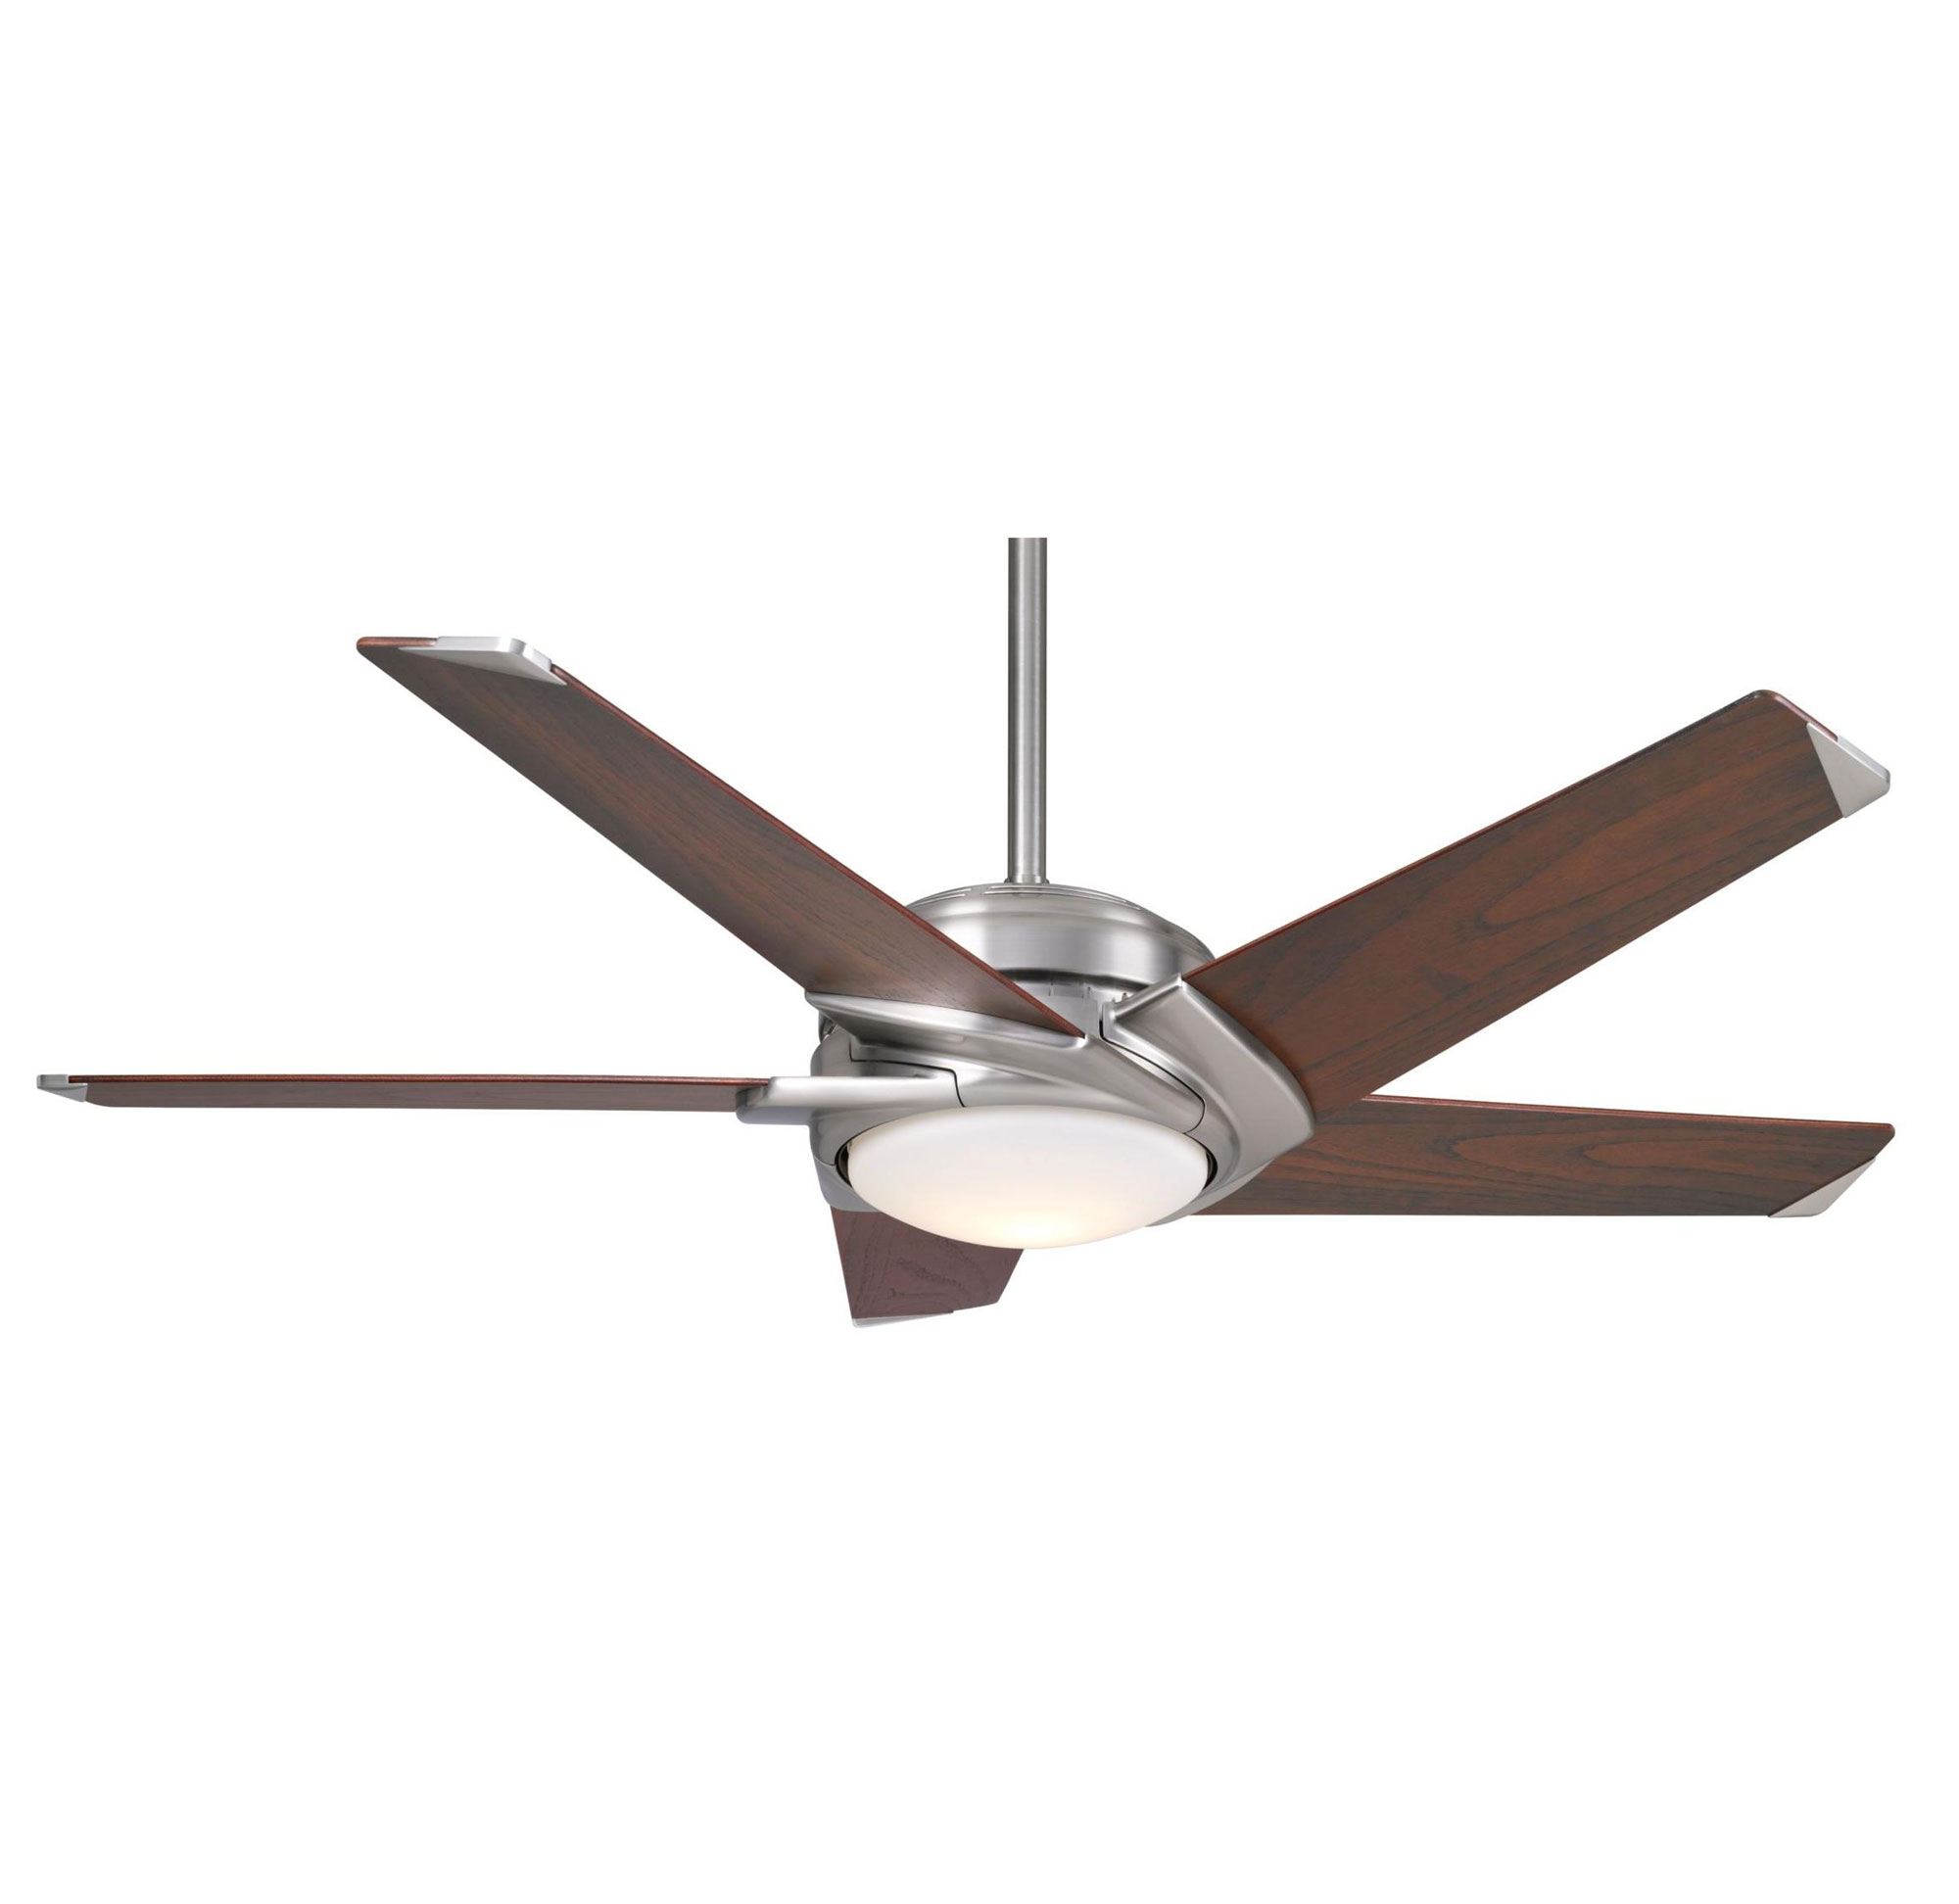 Stealth Dc Led 5 Blade Ceiling Fan By Casablanca